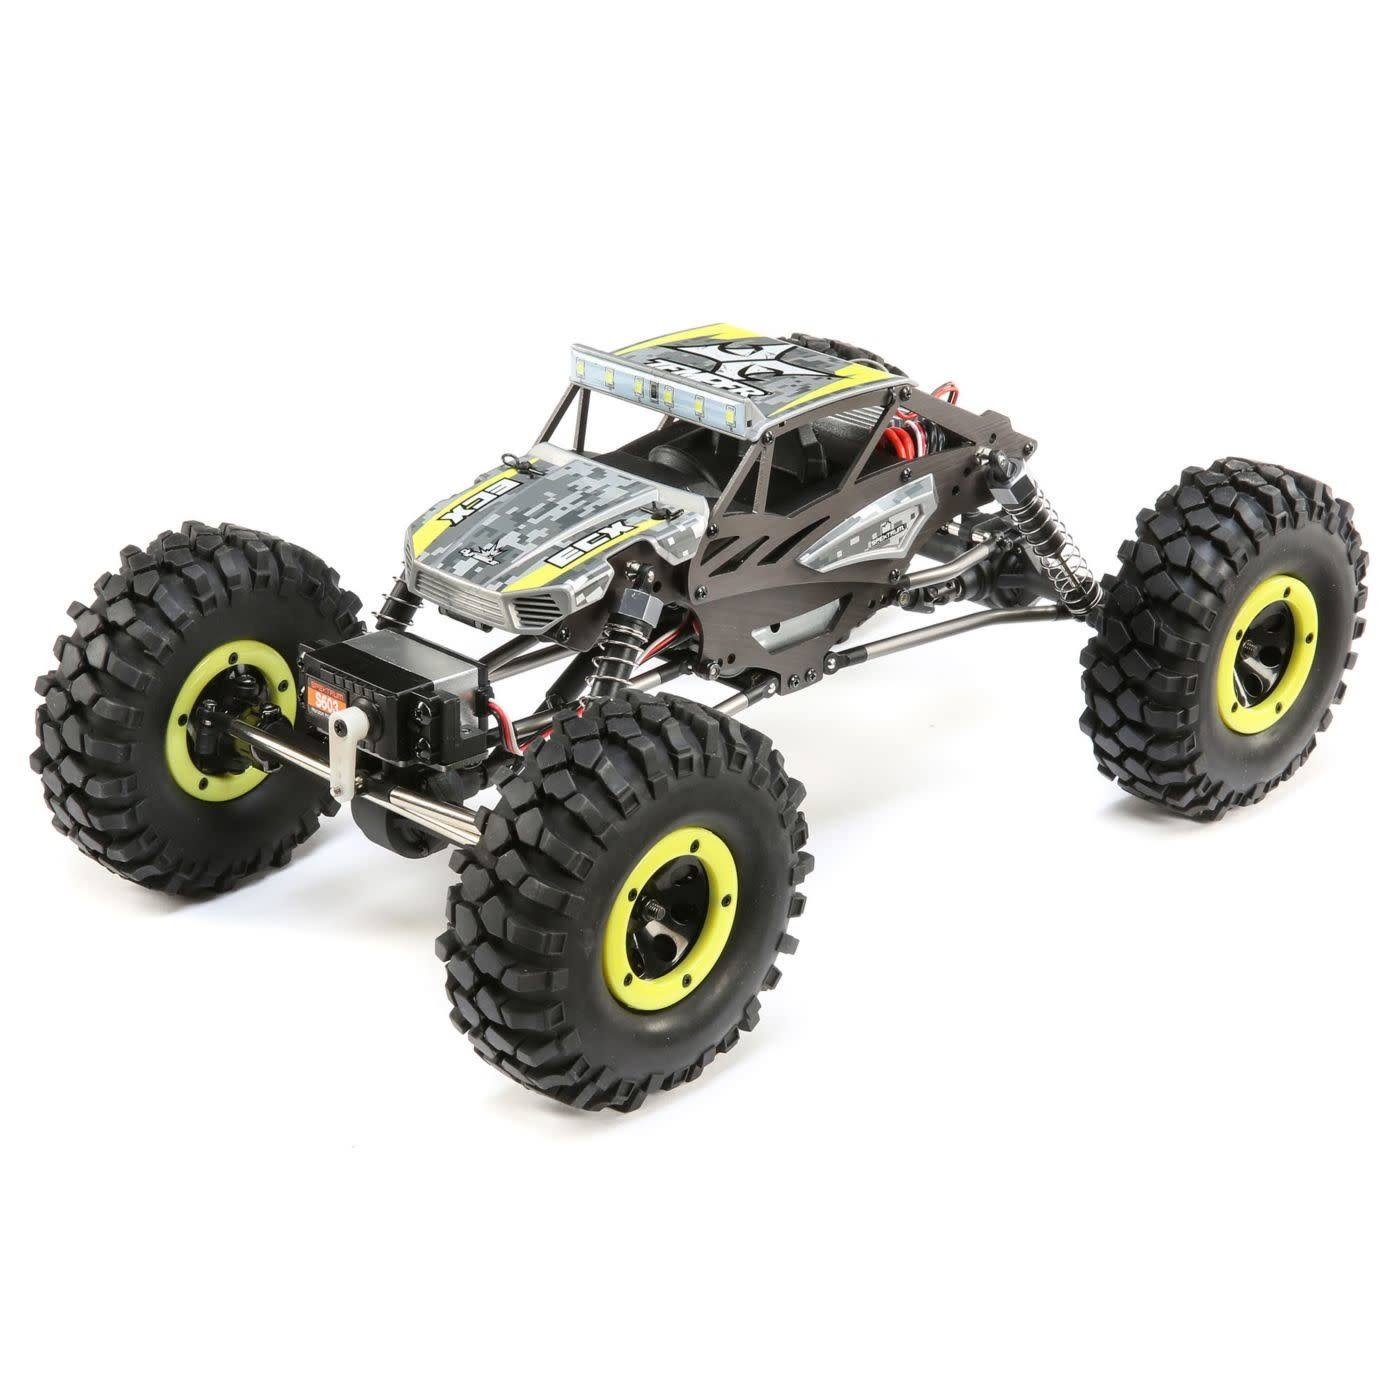 ECX ECX01015T1 Yellow 1/18 Temper 4WD Gen 2 Brushed RTR